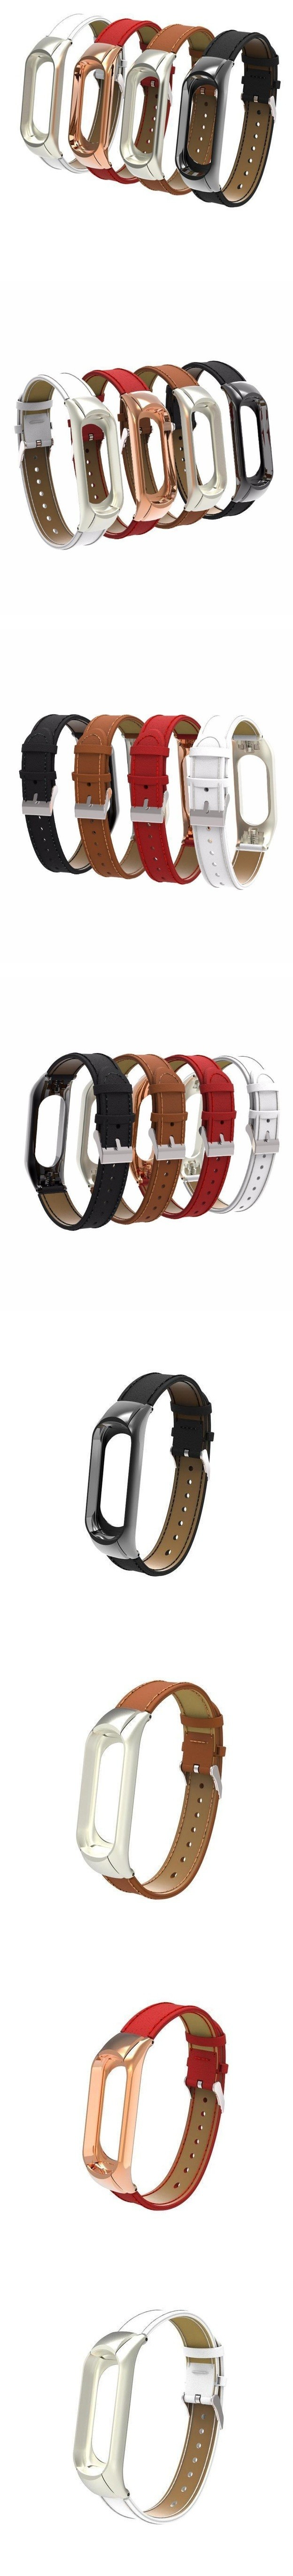 Prezentare-Mi-Band-4-leather-strap19ad4dd0d59d7f9d.jpg